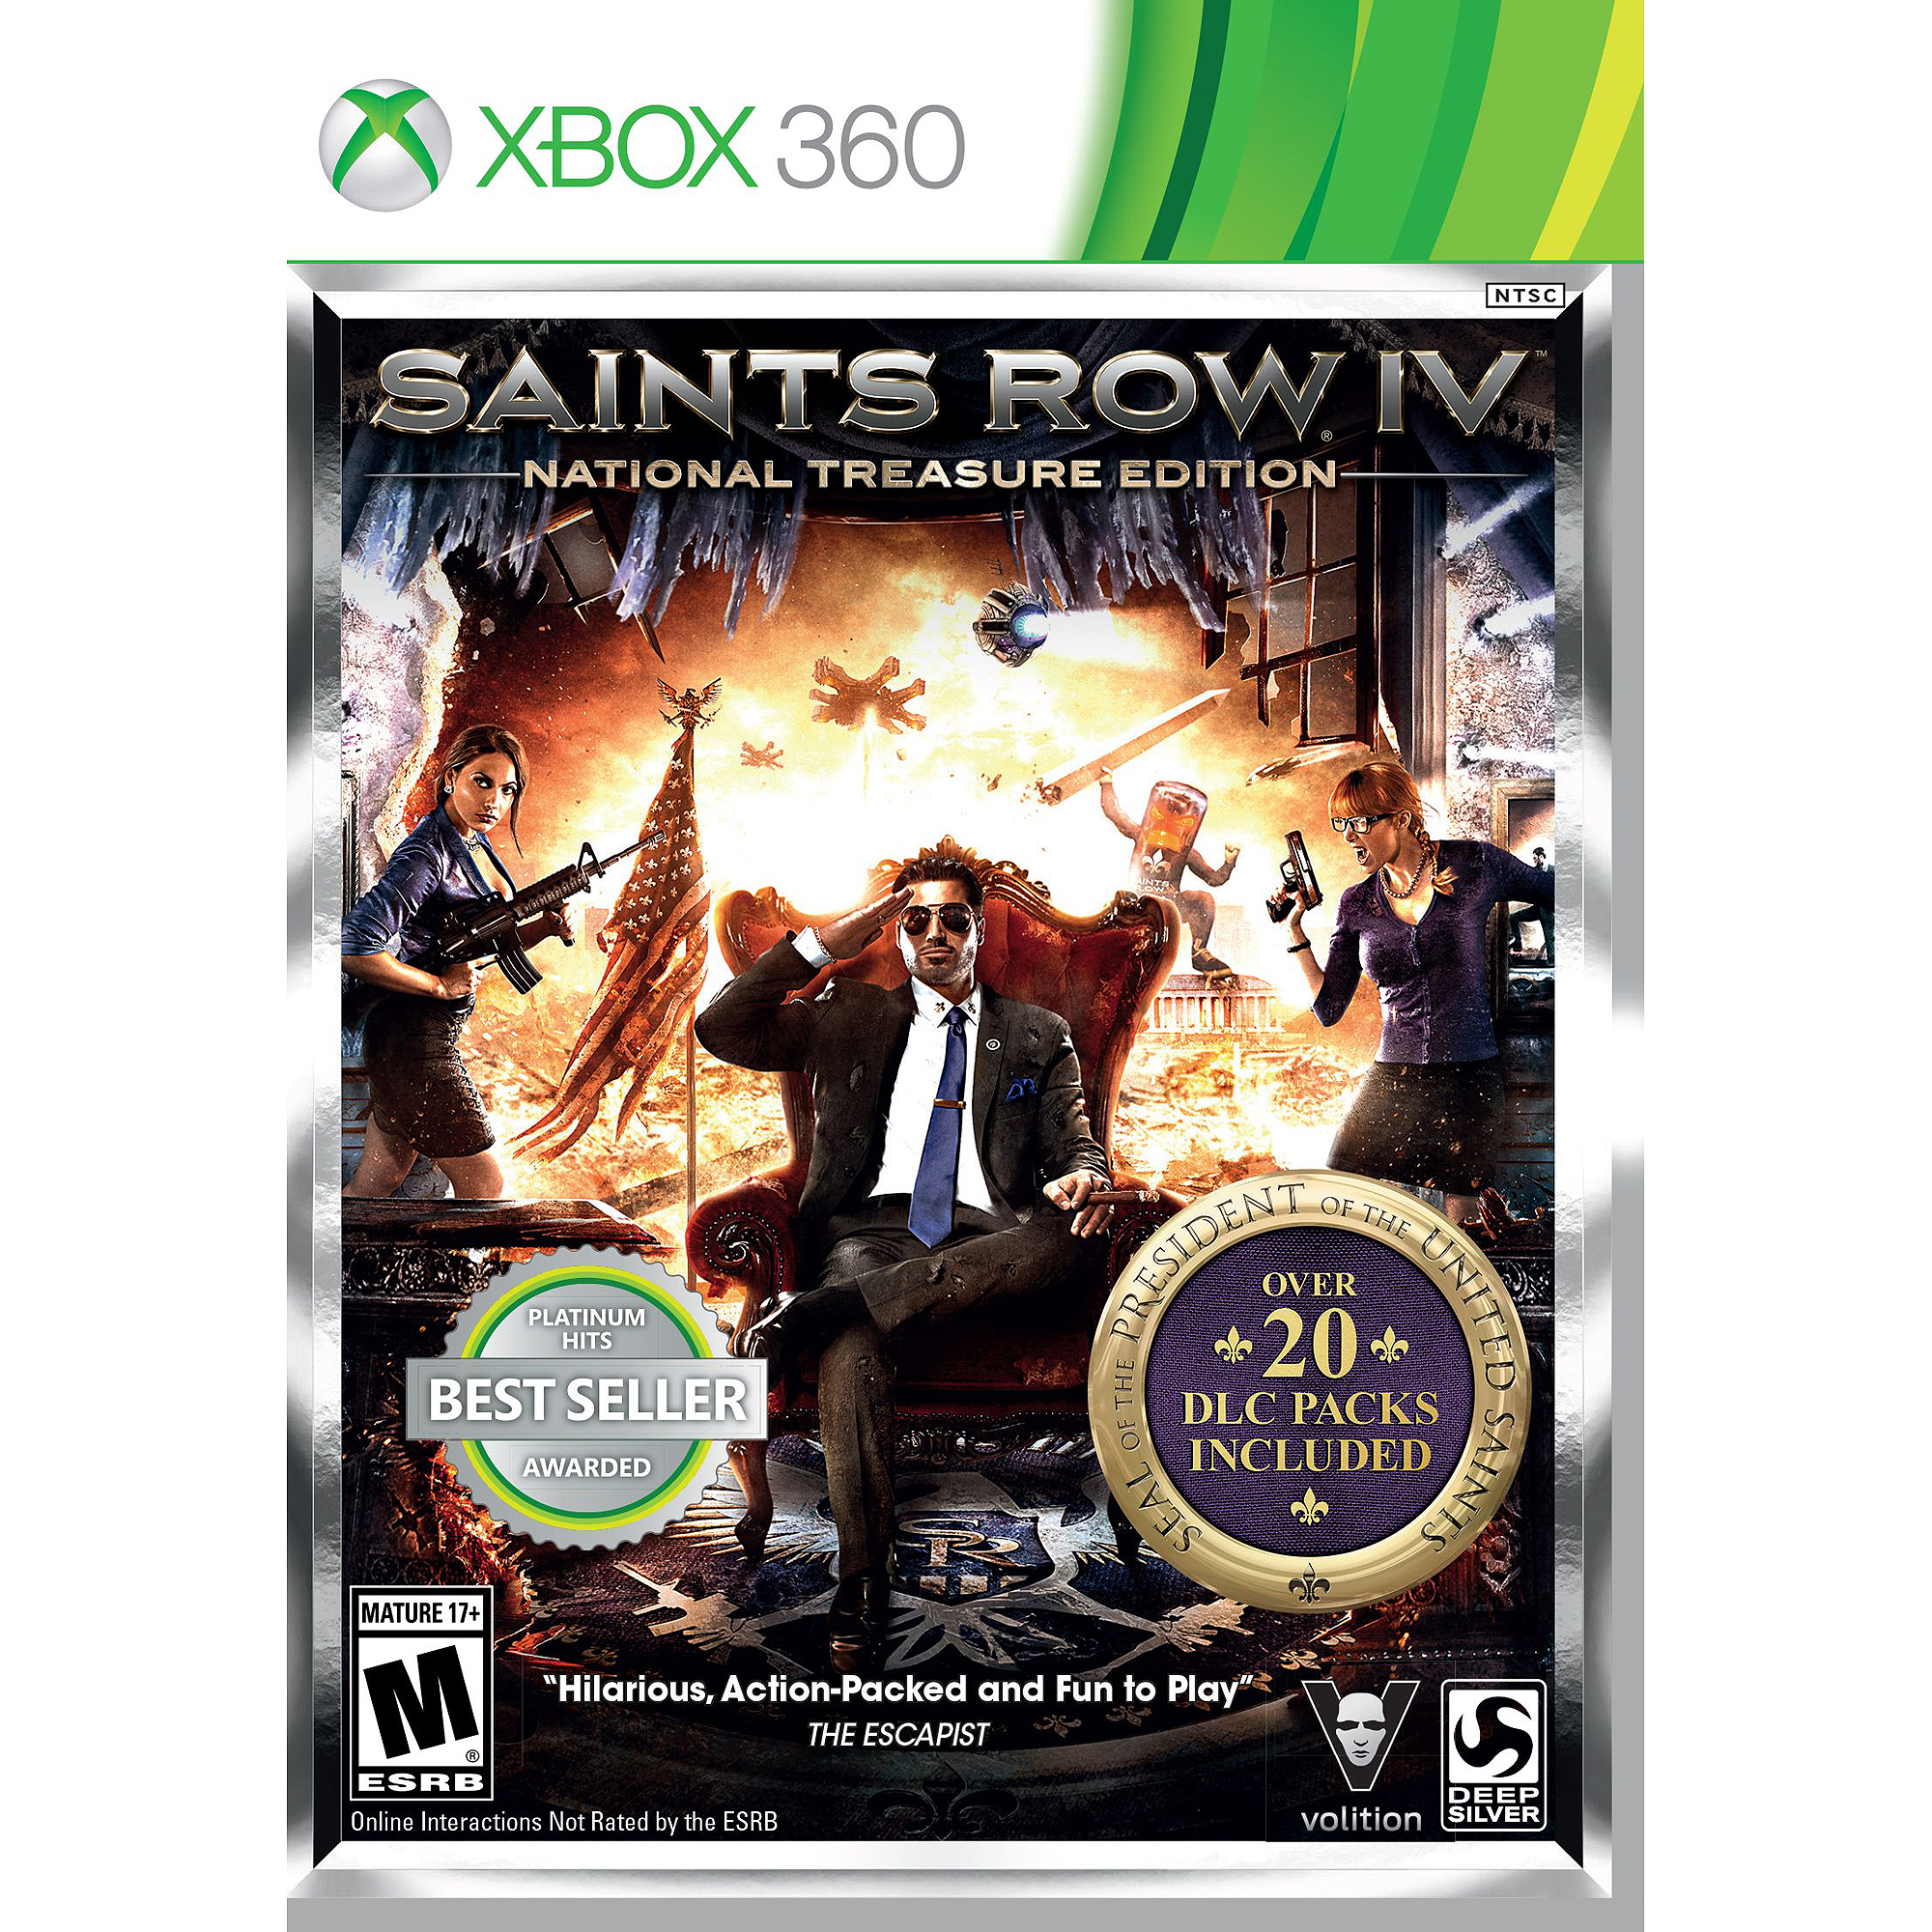 Saints Row IV: National Treasure Edition (Xbox 360)